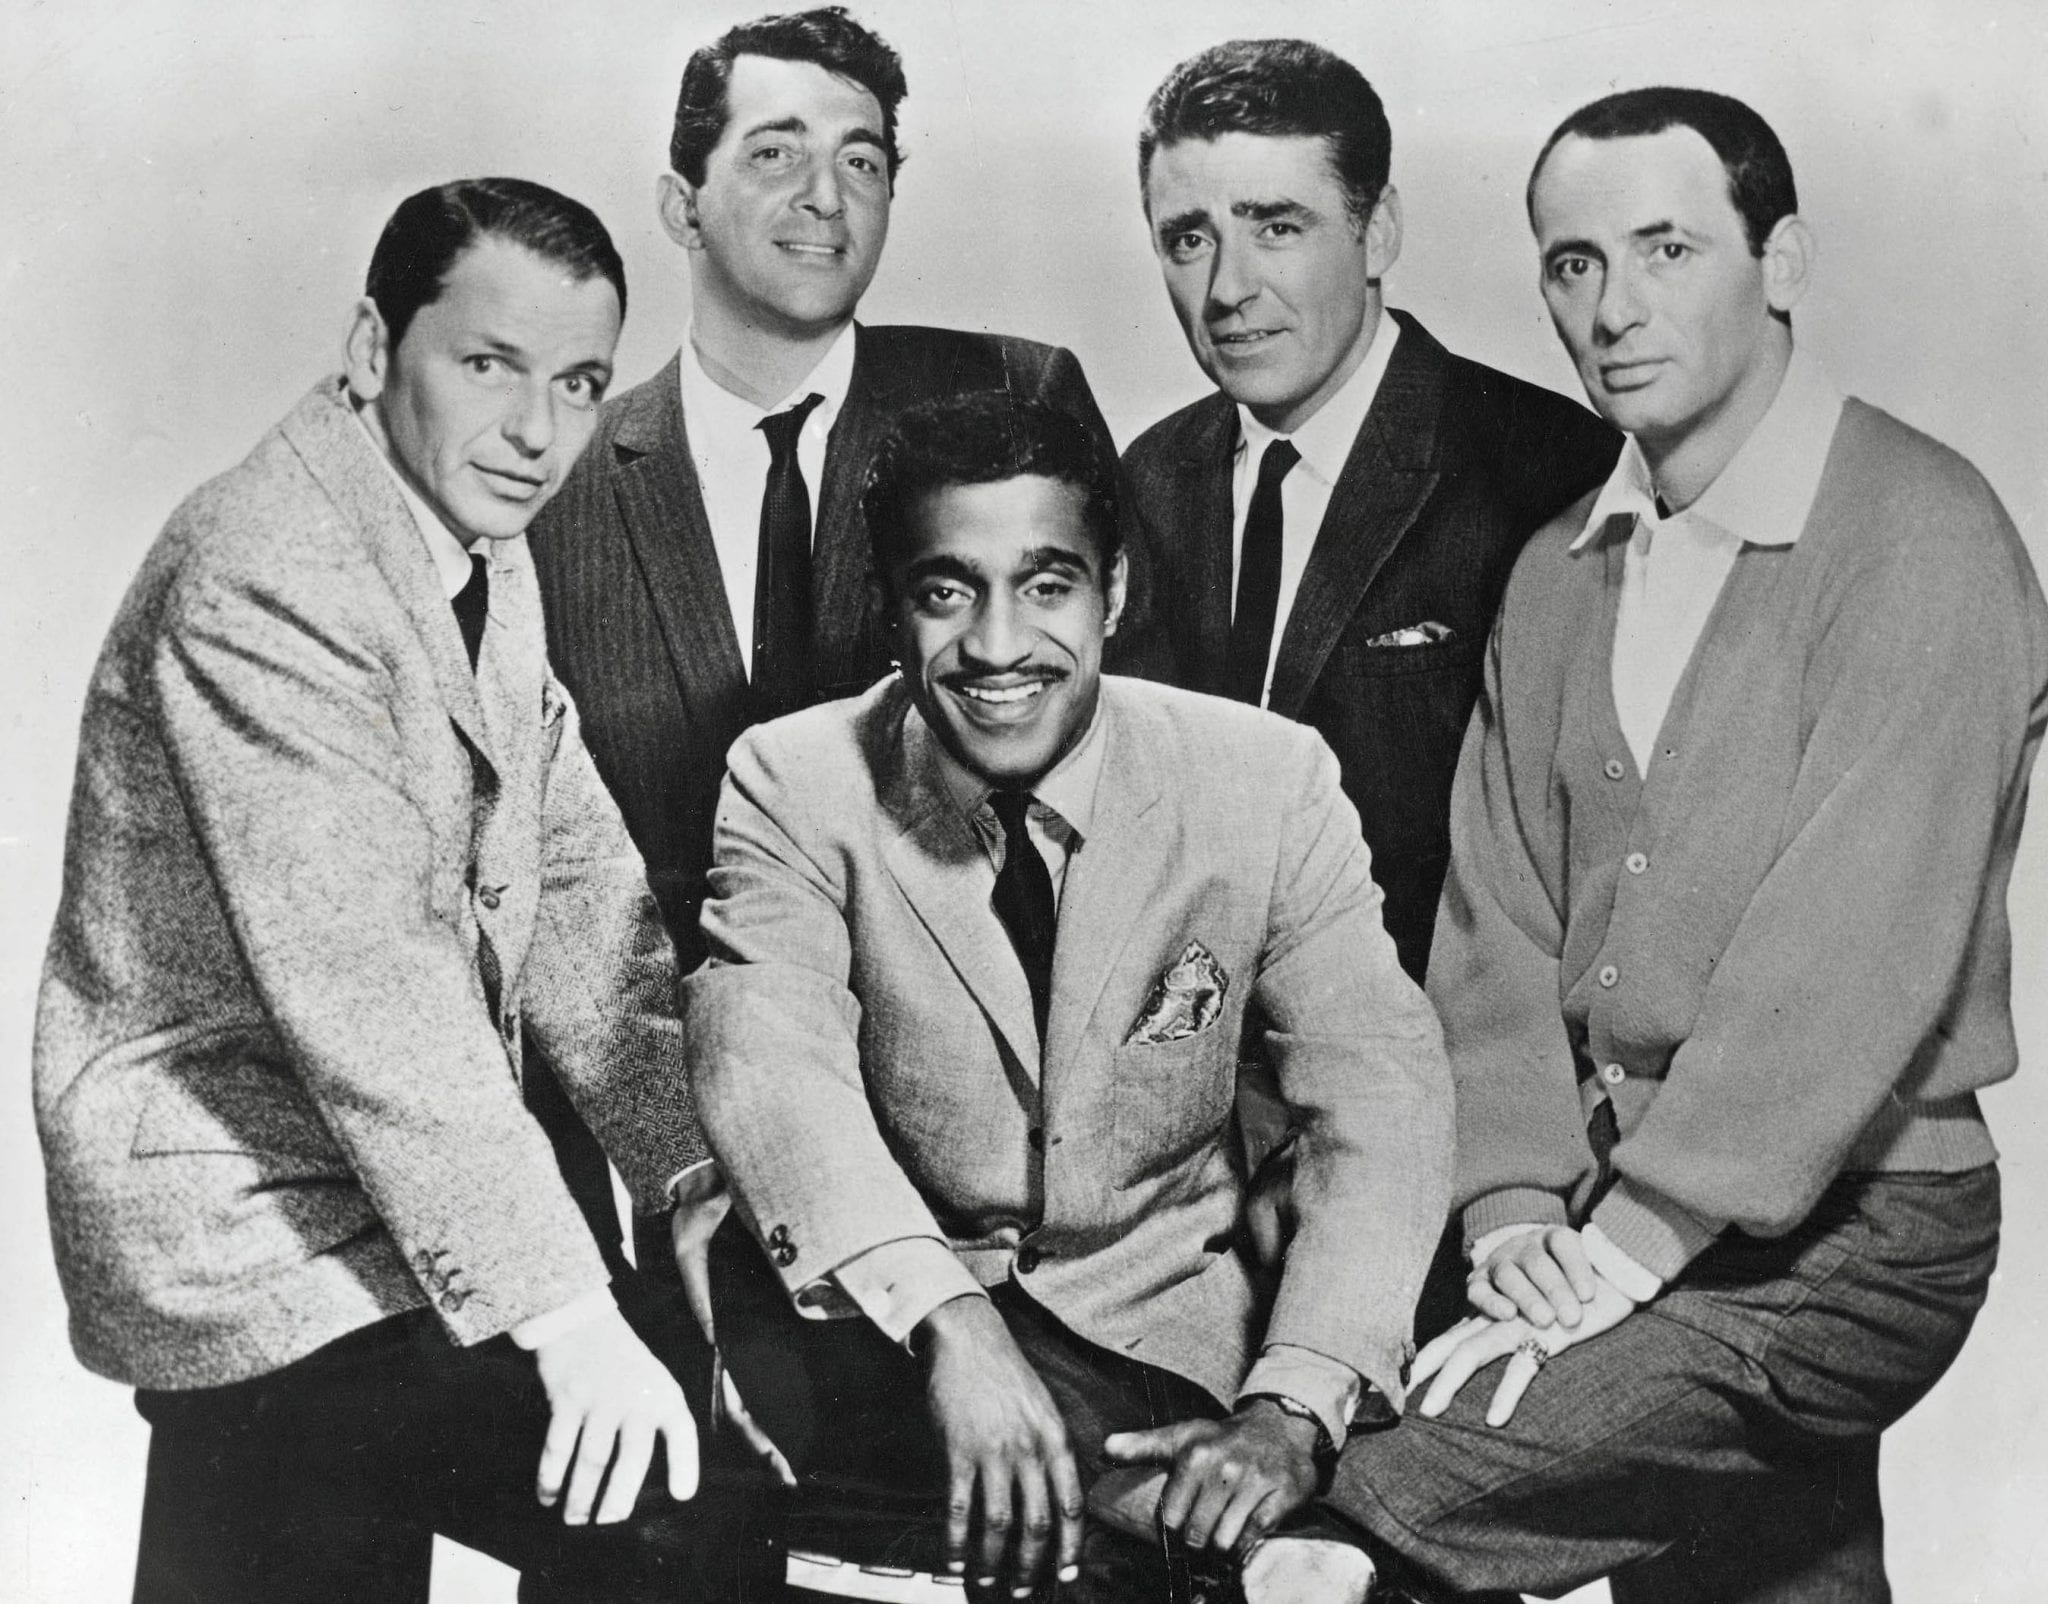 The Rat Pack (Frank Sinatra, Dean Martin, Sammy Davis Junior, Peter Lawford and Joey Bishop) pose for a photo in August 1960. [Photo Credit: Popperfoto | Getty Images]